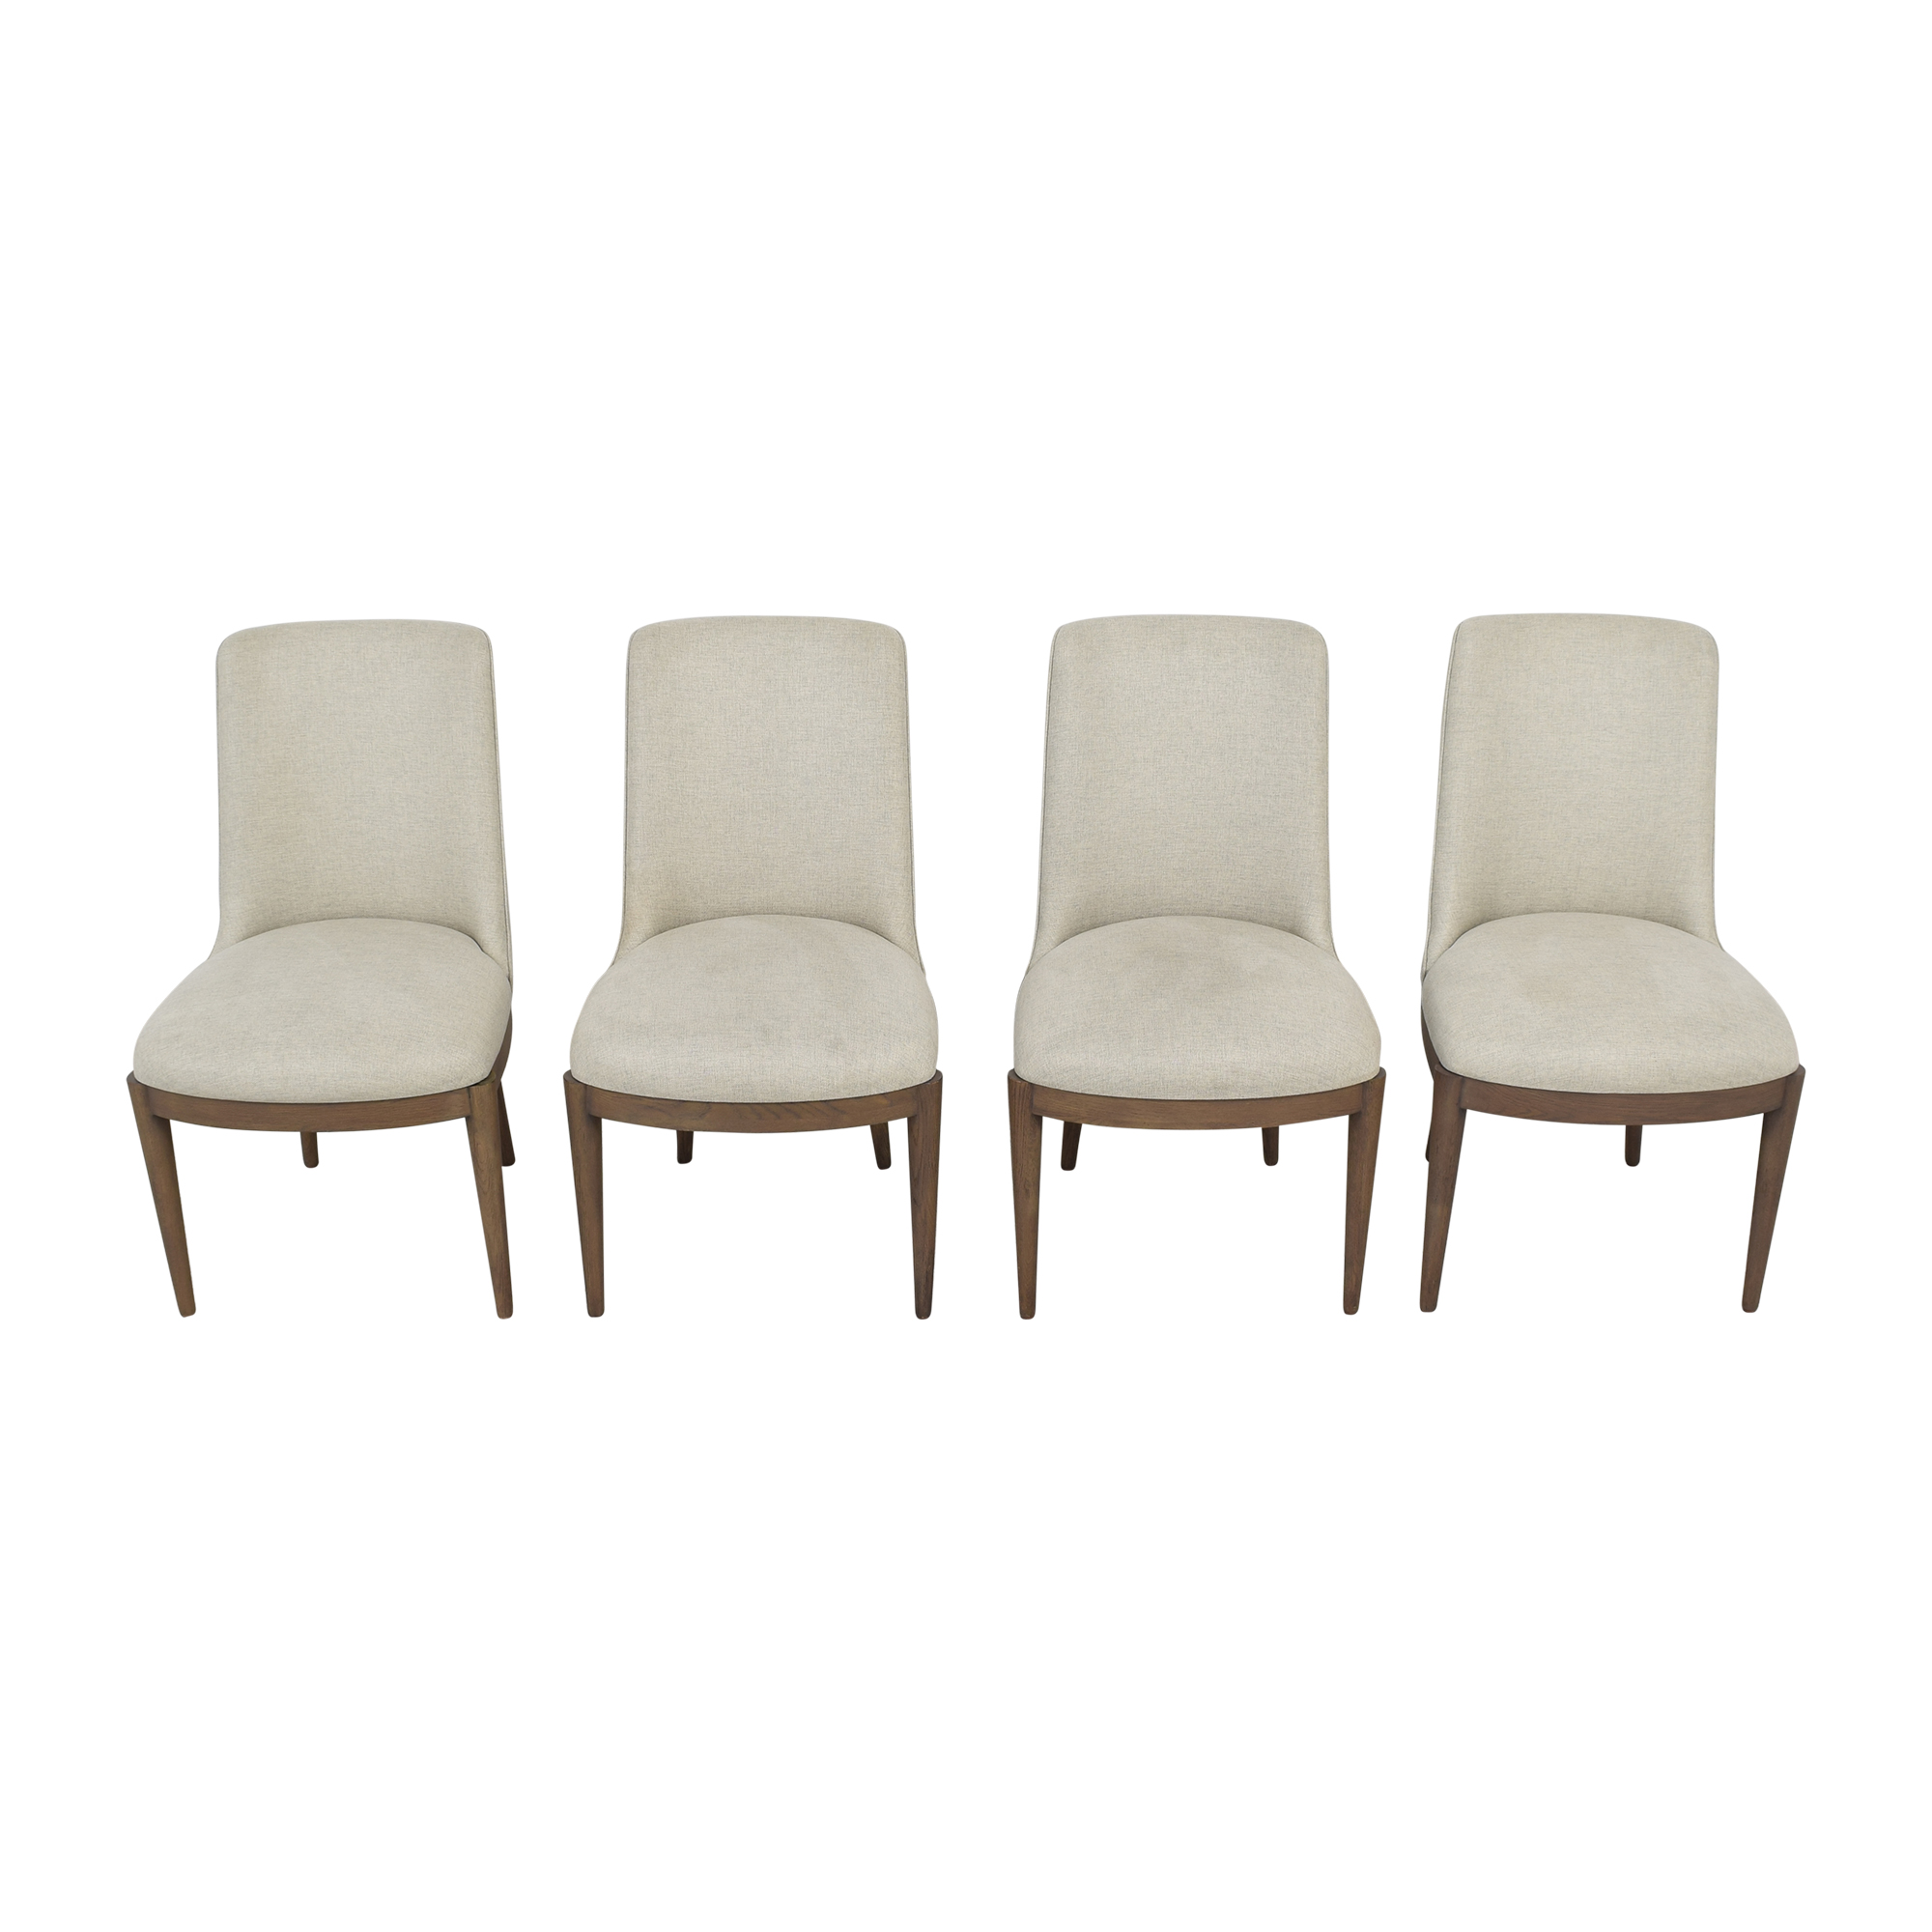 Caracole Metro Dining Chairs / Dining Chairs